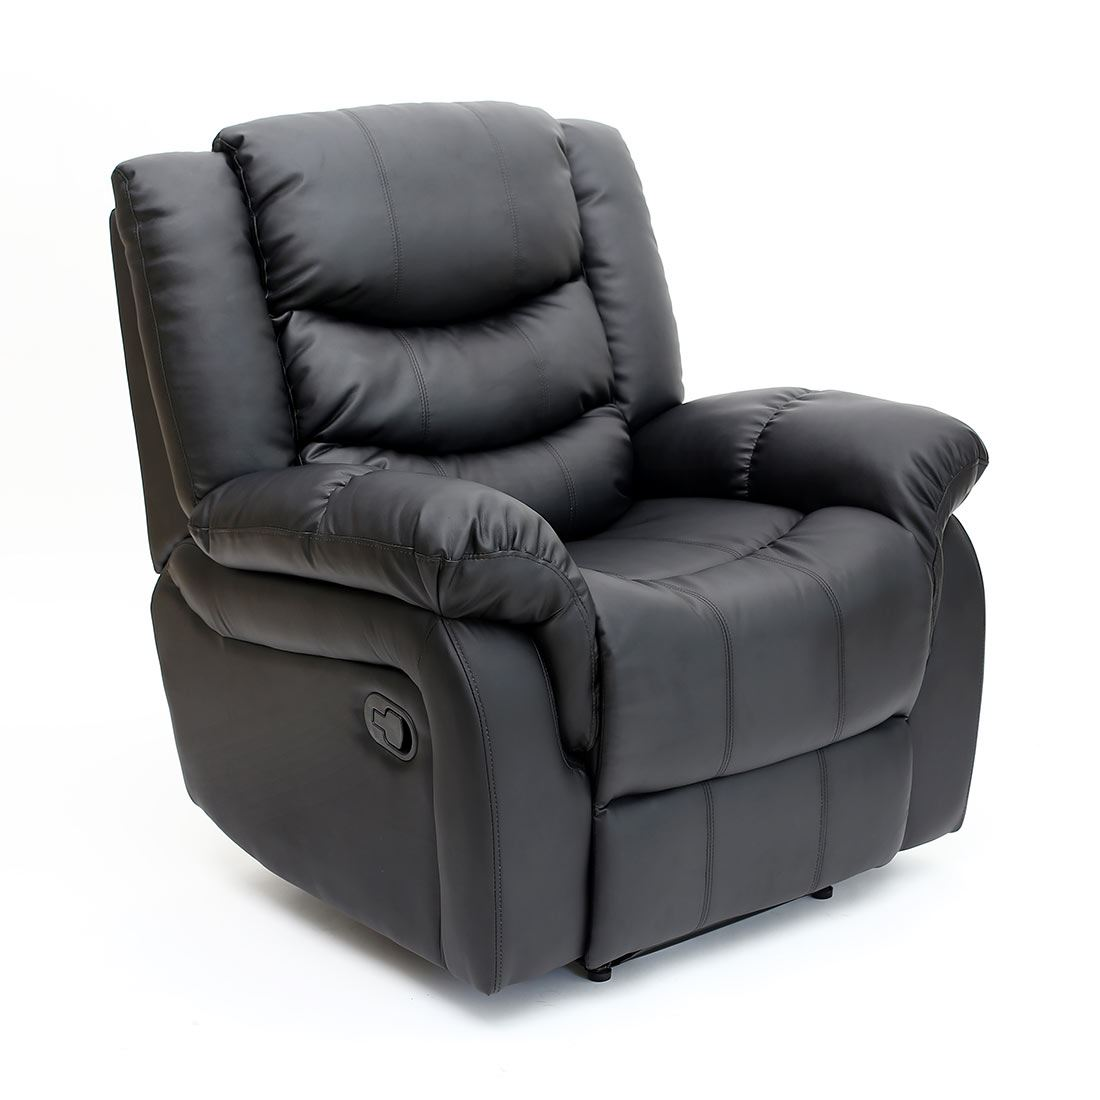 leather lounge armchair seattle leather recliner armchair sofa home lounge chair 16659 | 47c92444 0efe 4016 b19d bdd8a79ebeaf